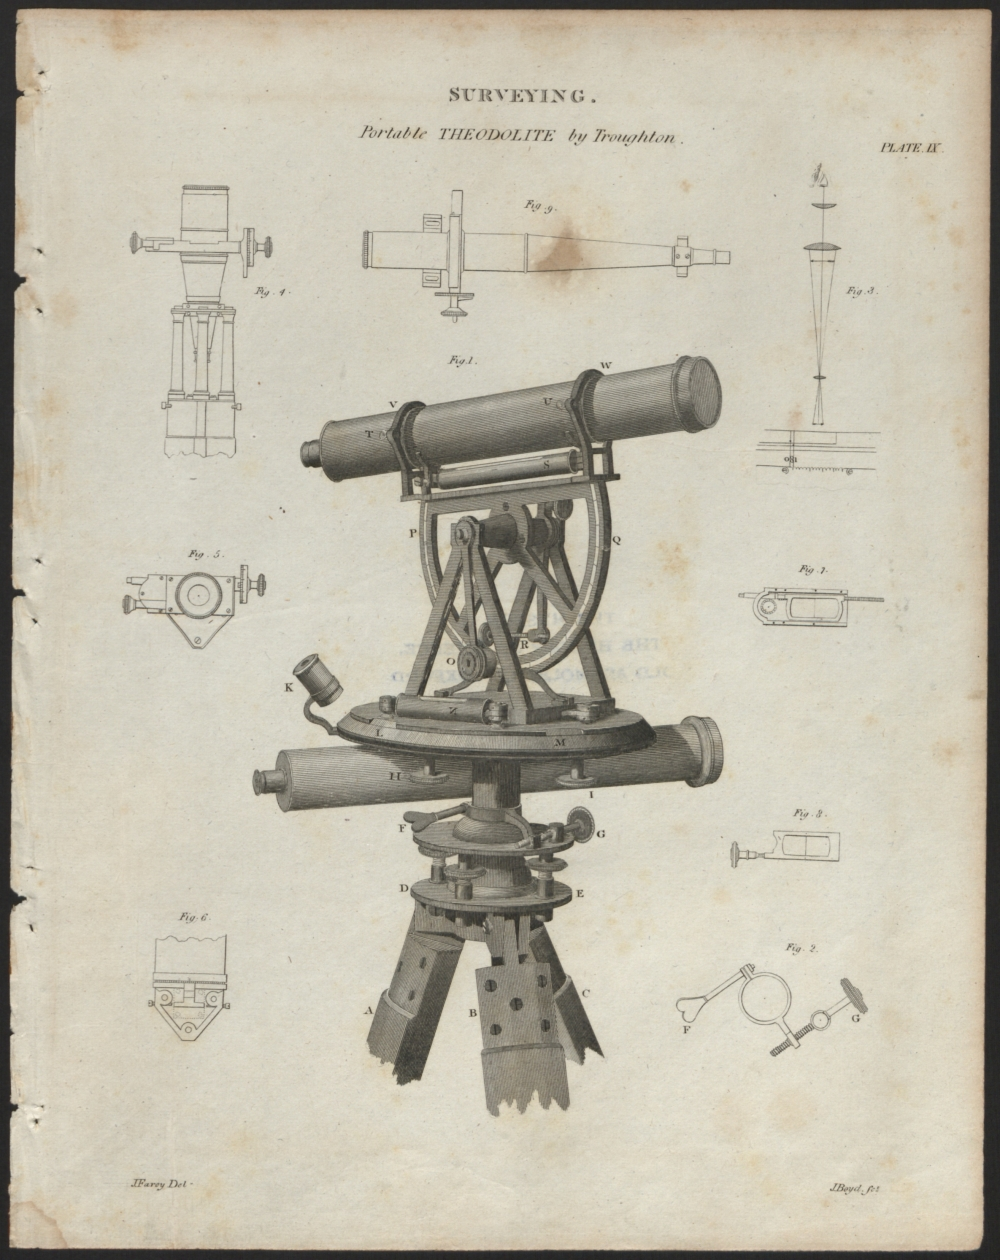 preview image for Print (Engraving) Surveying Portable Theodolite, by J. Boyd after J. Farey, from Rees Encyclopedia, Philadelphia, U.S.A., Early 19th Century